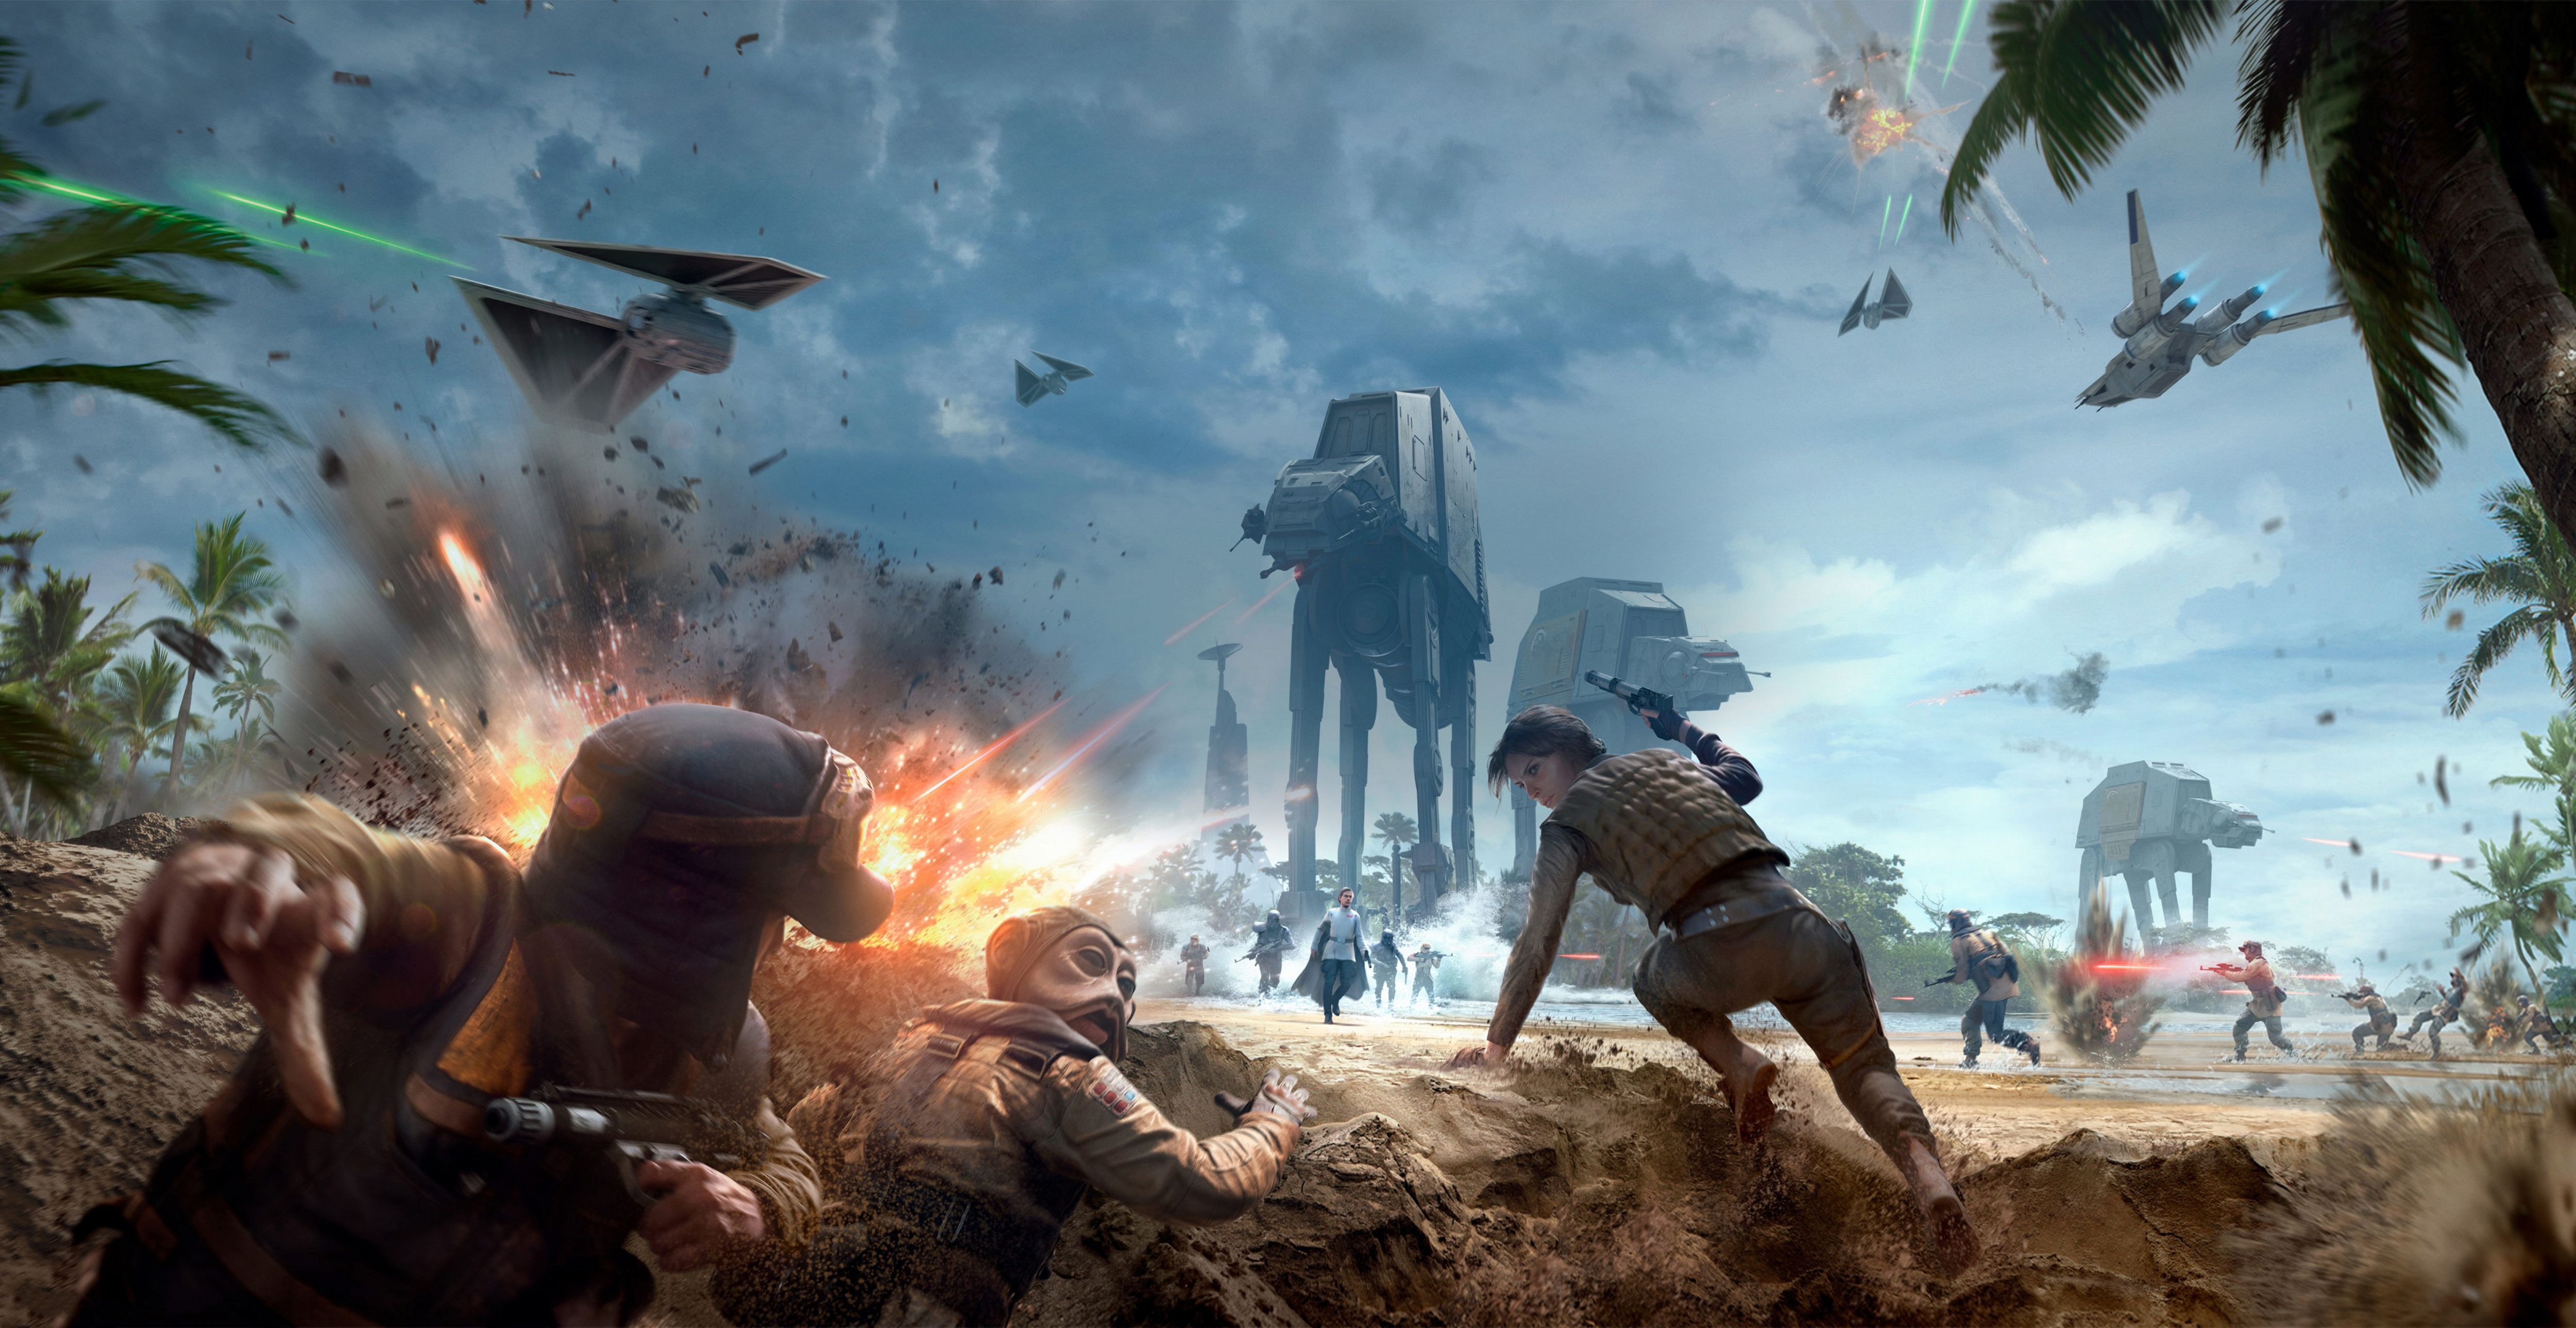 Rogue One Star Wars Battlefront Star Wars Video Games Battlefront